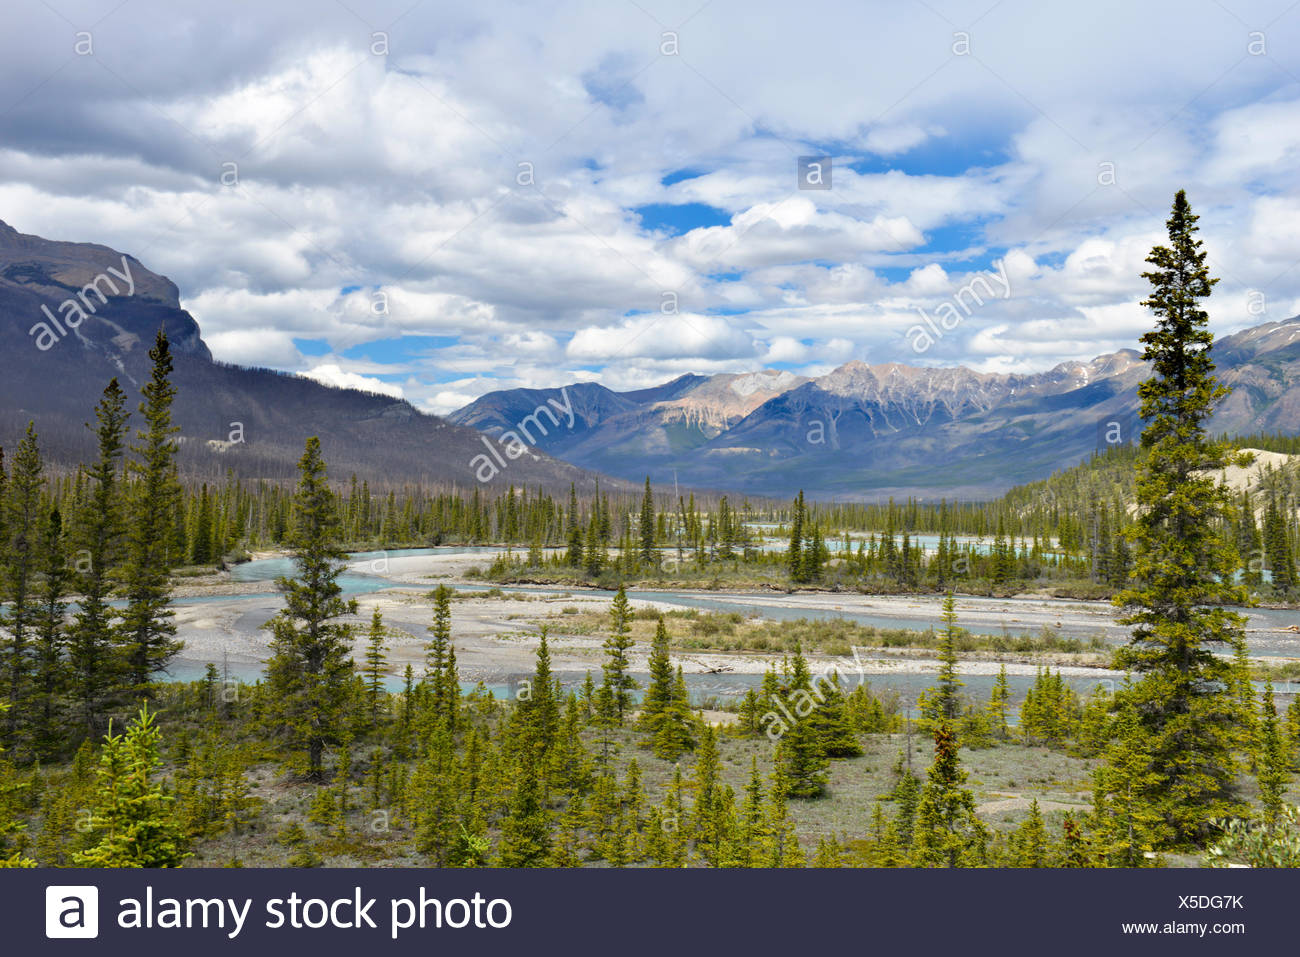 Saskatchewan River Crossing on the Icefields Parkway, Jasper National Park, Canada. - Stock Image